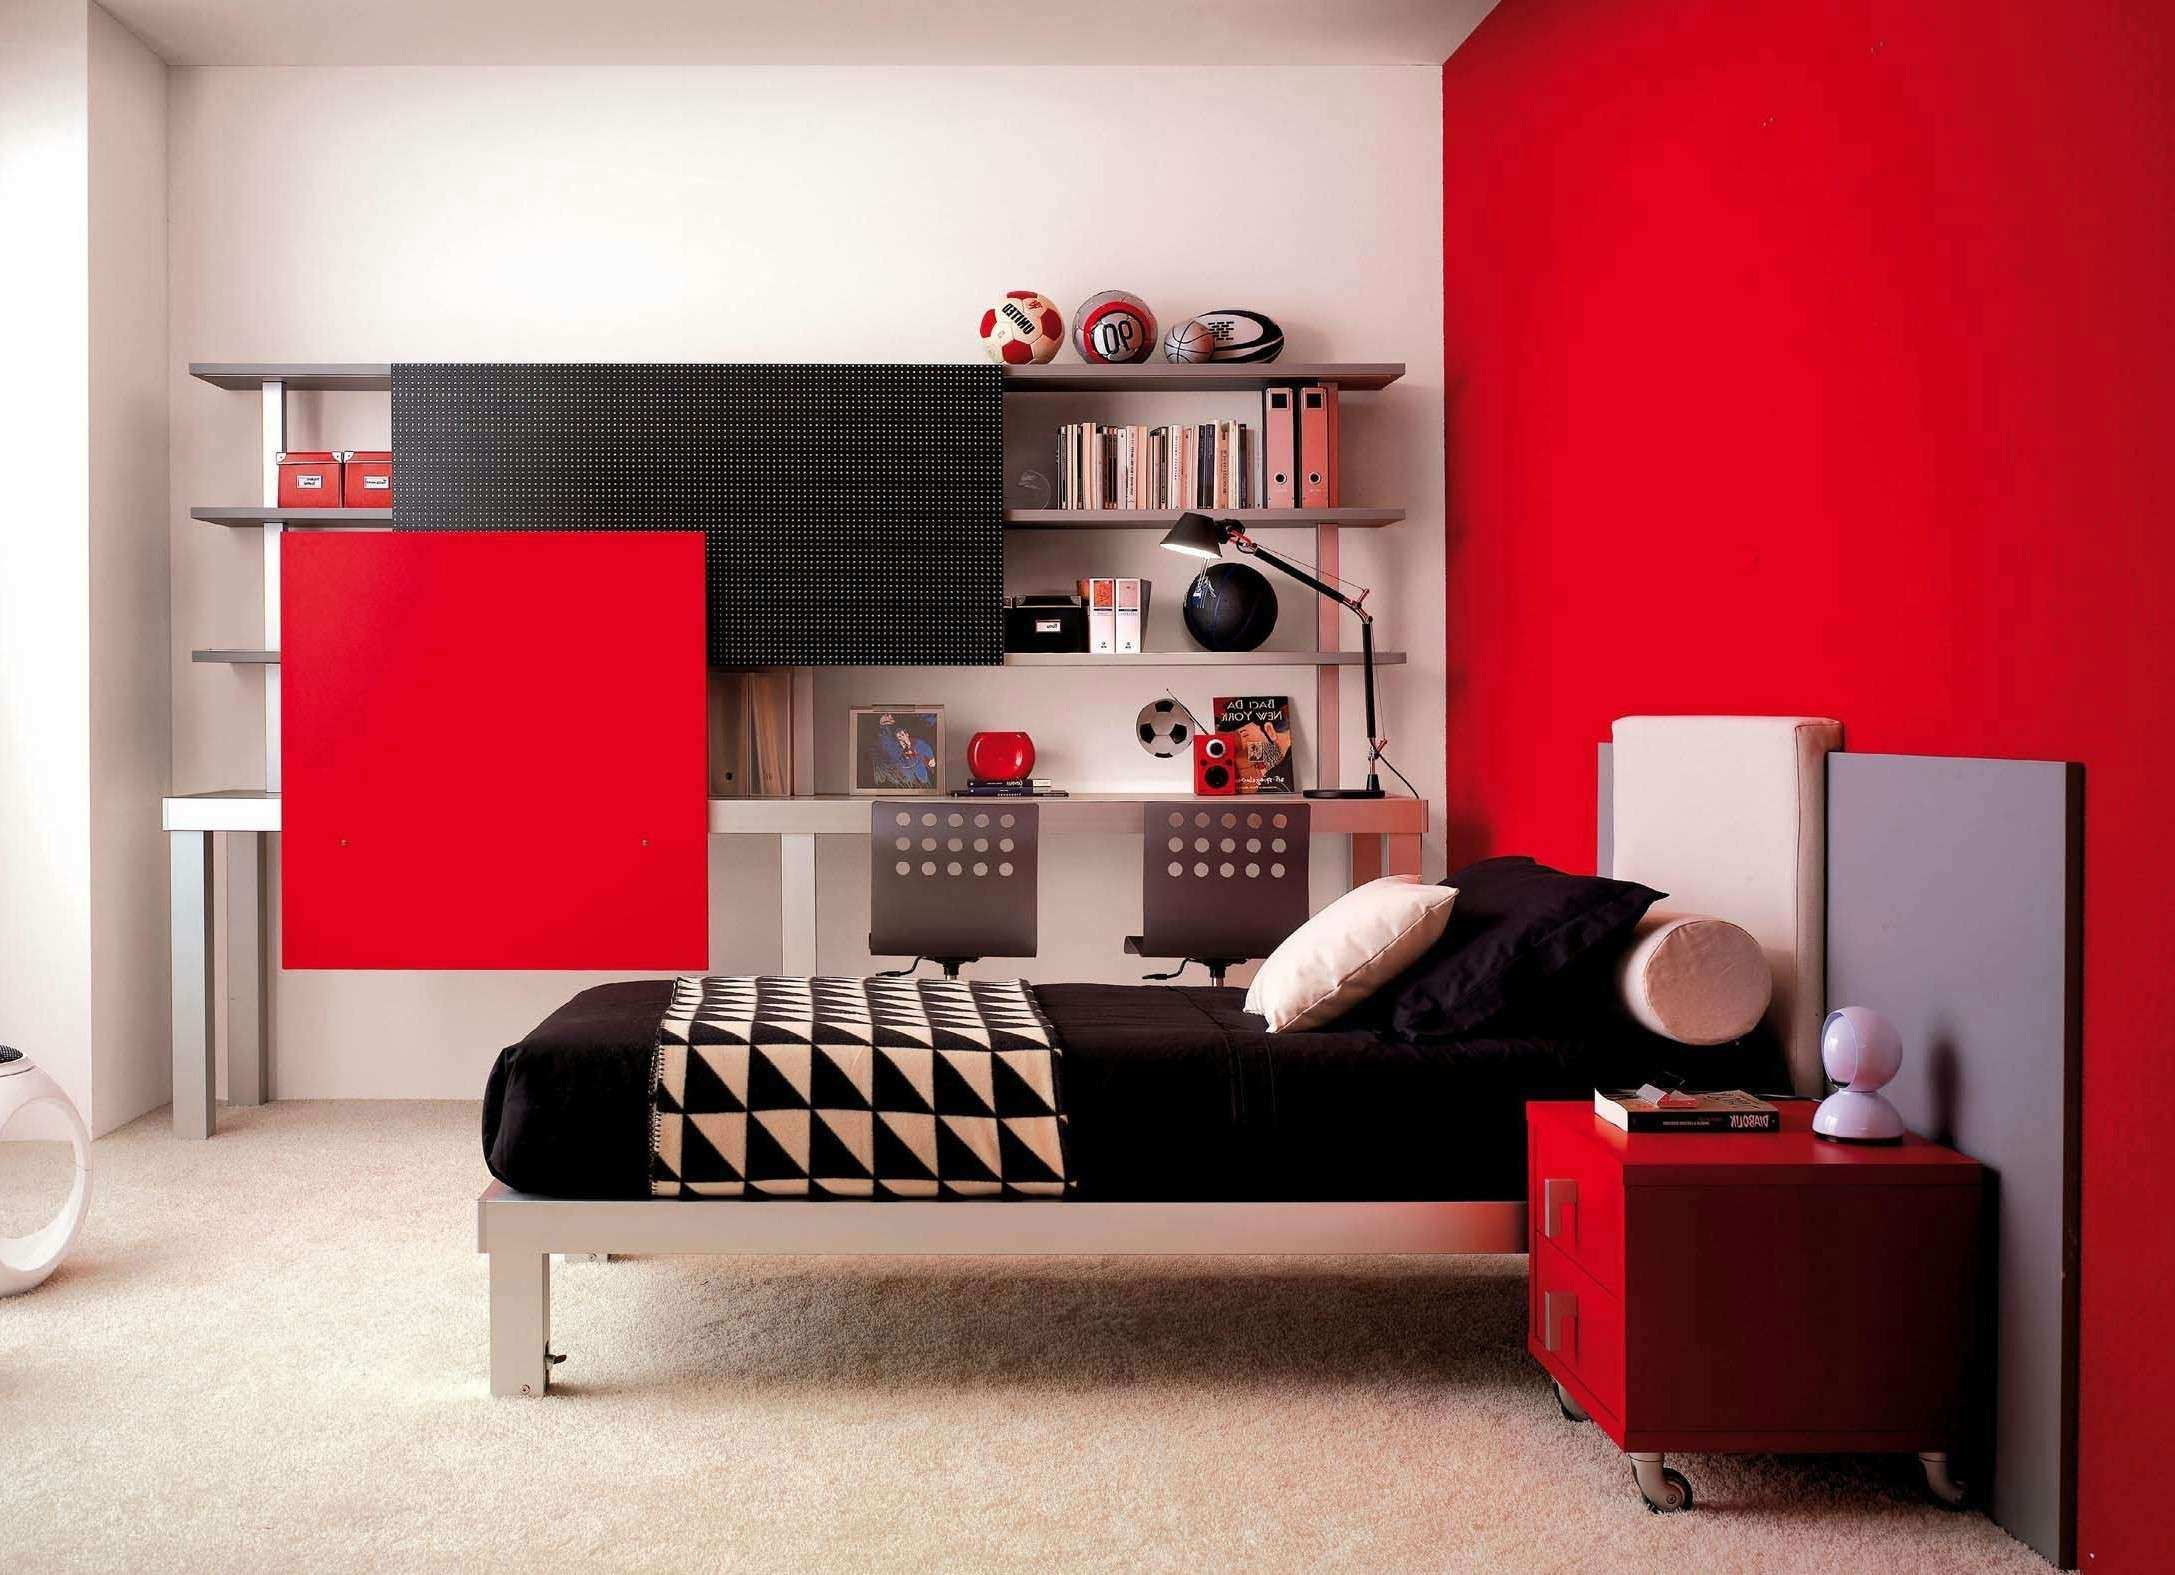 Diy Girl Bedroom Red And Black Wall Decor